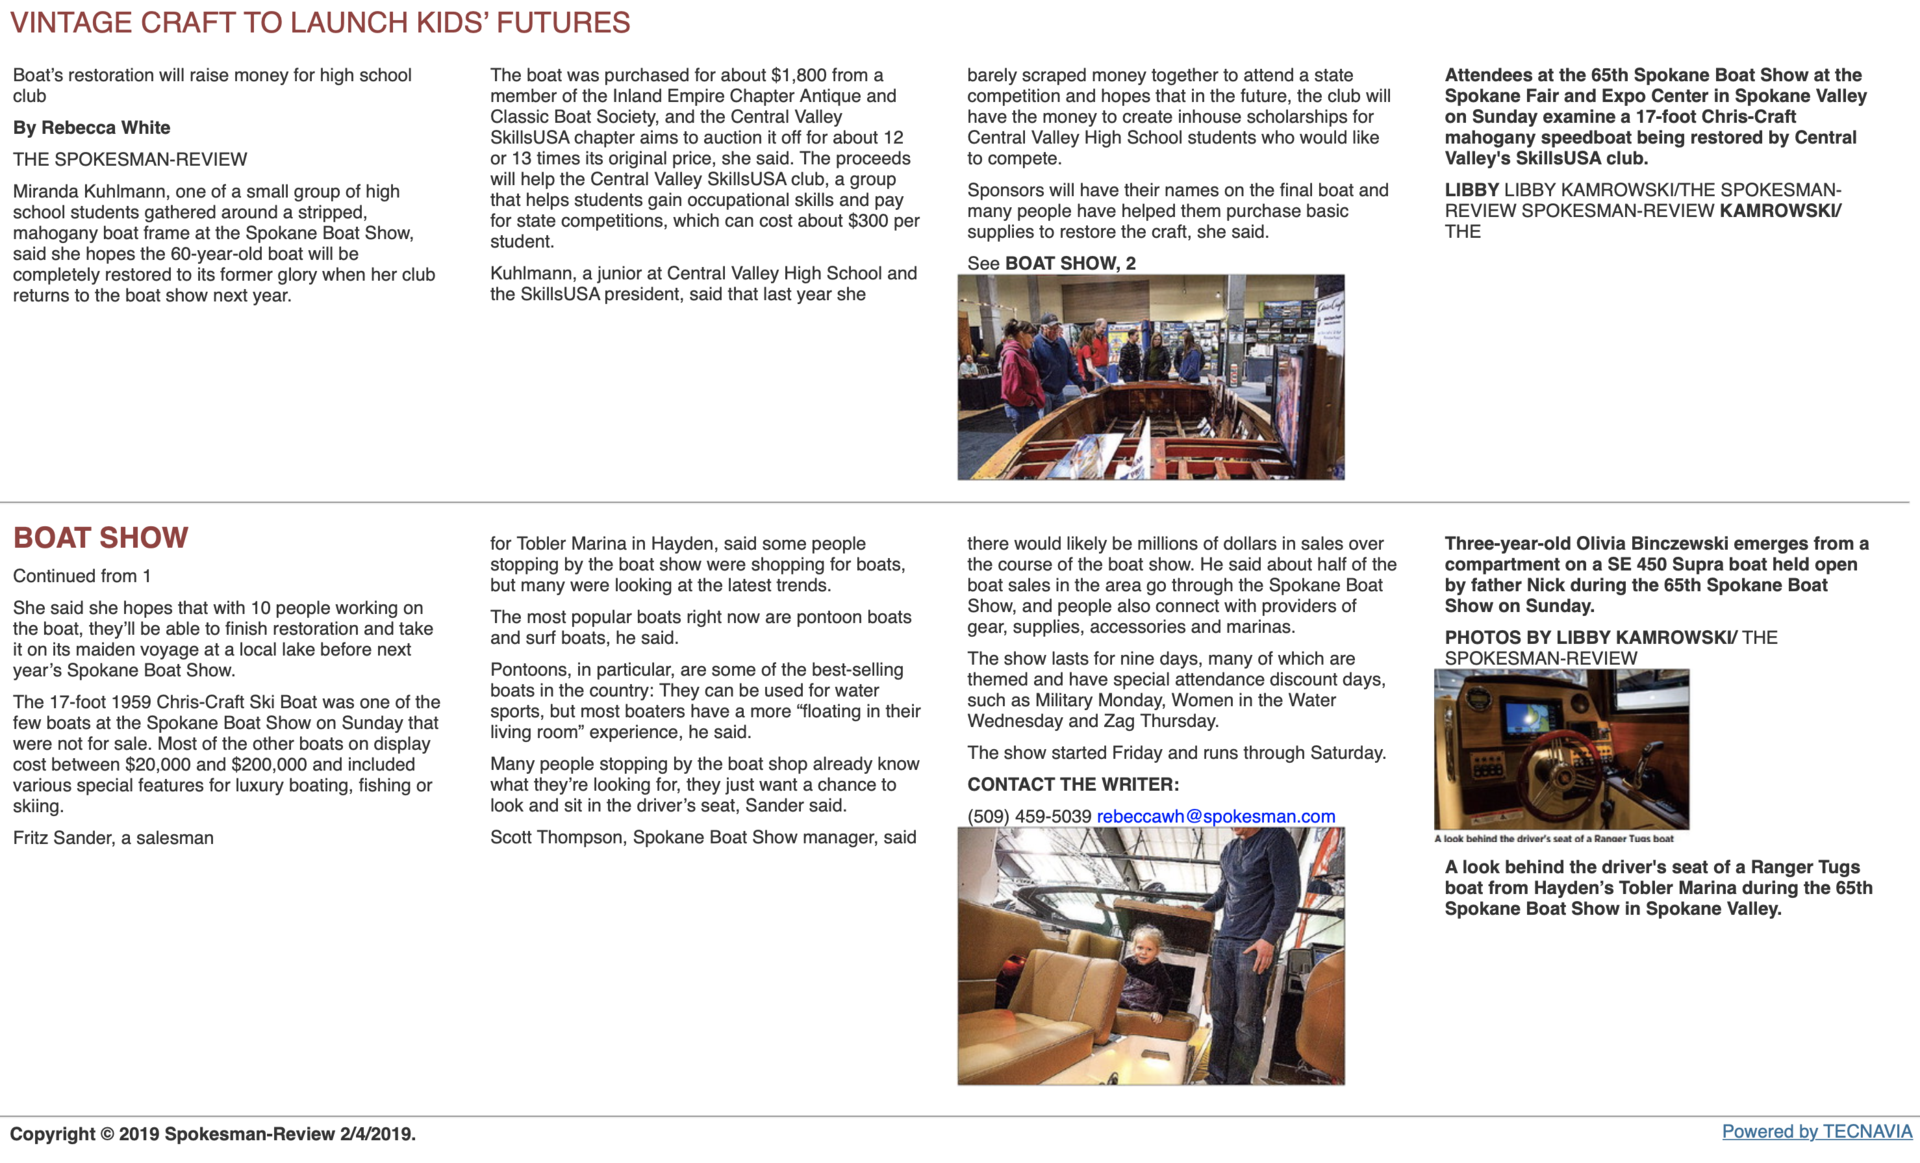 Boat show article